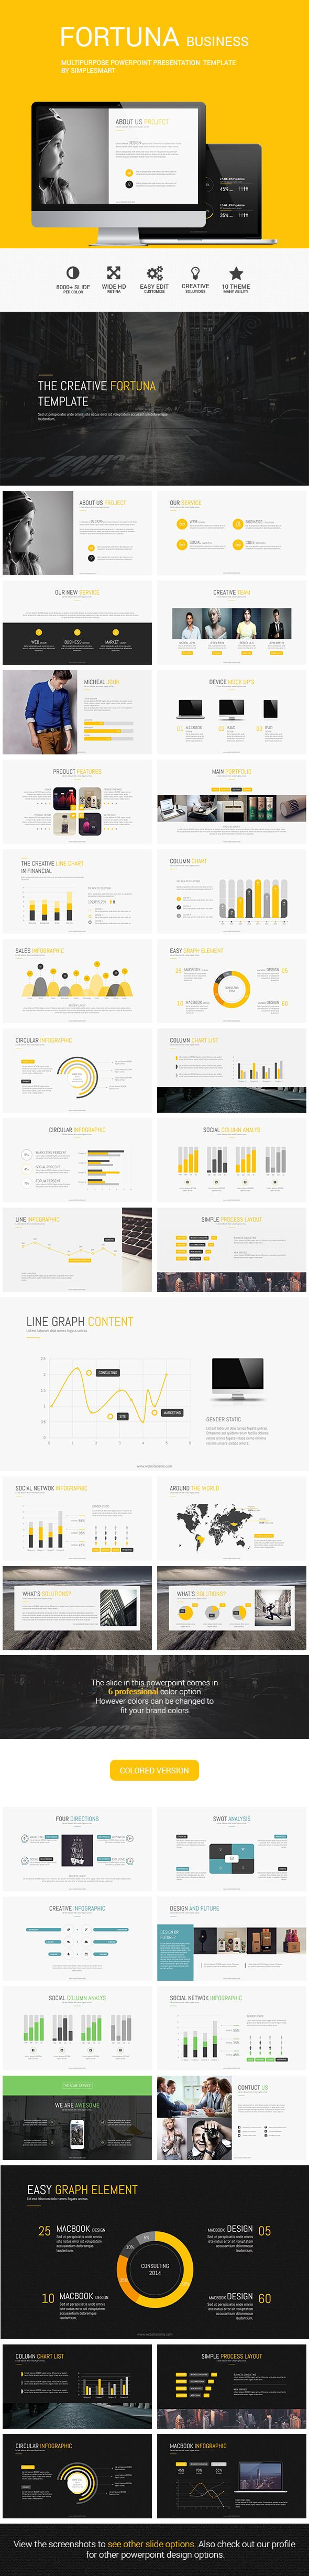 FORTUNA - Multipurpose Presentation Template - Business Powerpoint Templates.